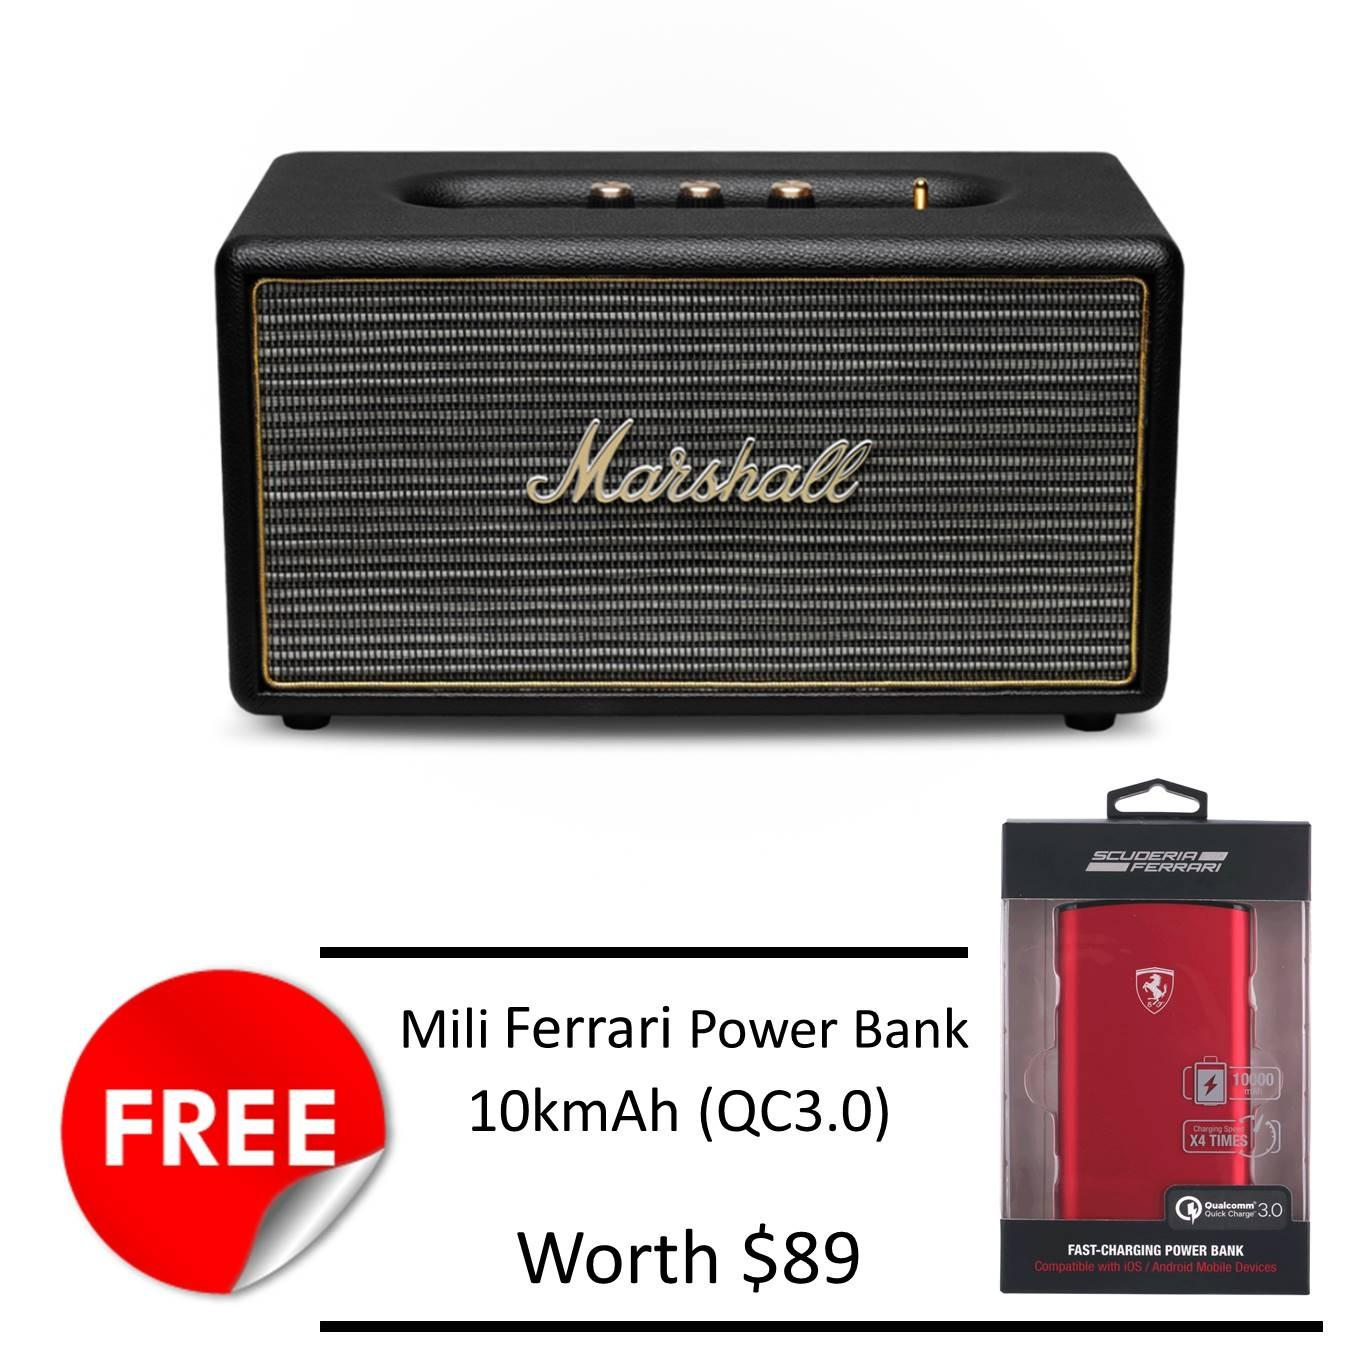 Price Comparisons Of Marshall Stanmore Bluetooth Speaker Black Free Mili Ferrari 10Kmah Powerbank